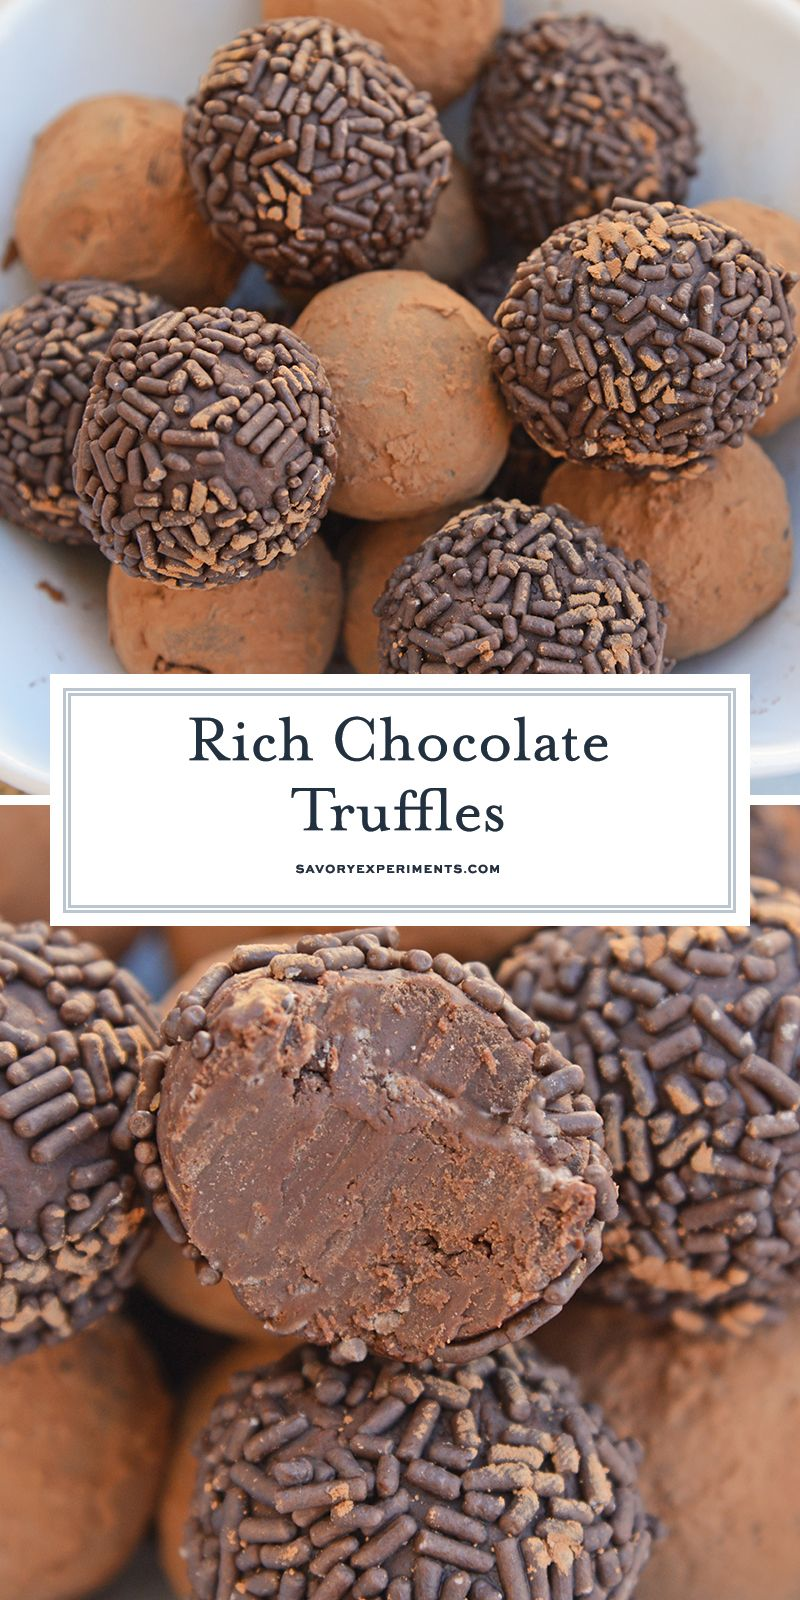 Easy Chocolate Truffles Only Use 4 Ingredients Including Sweetened Condensed Chocolate Truffles Easy Truffle Recipe Chocolate Sweetened Condensed Milk Recipes